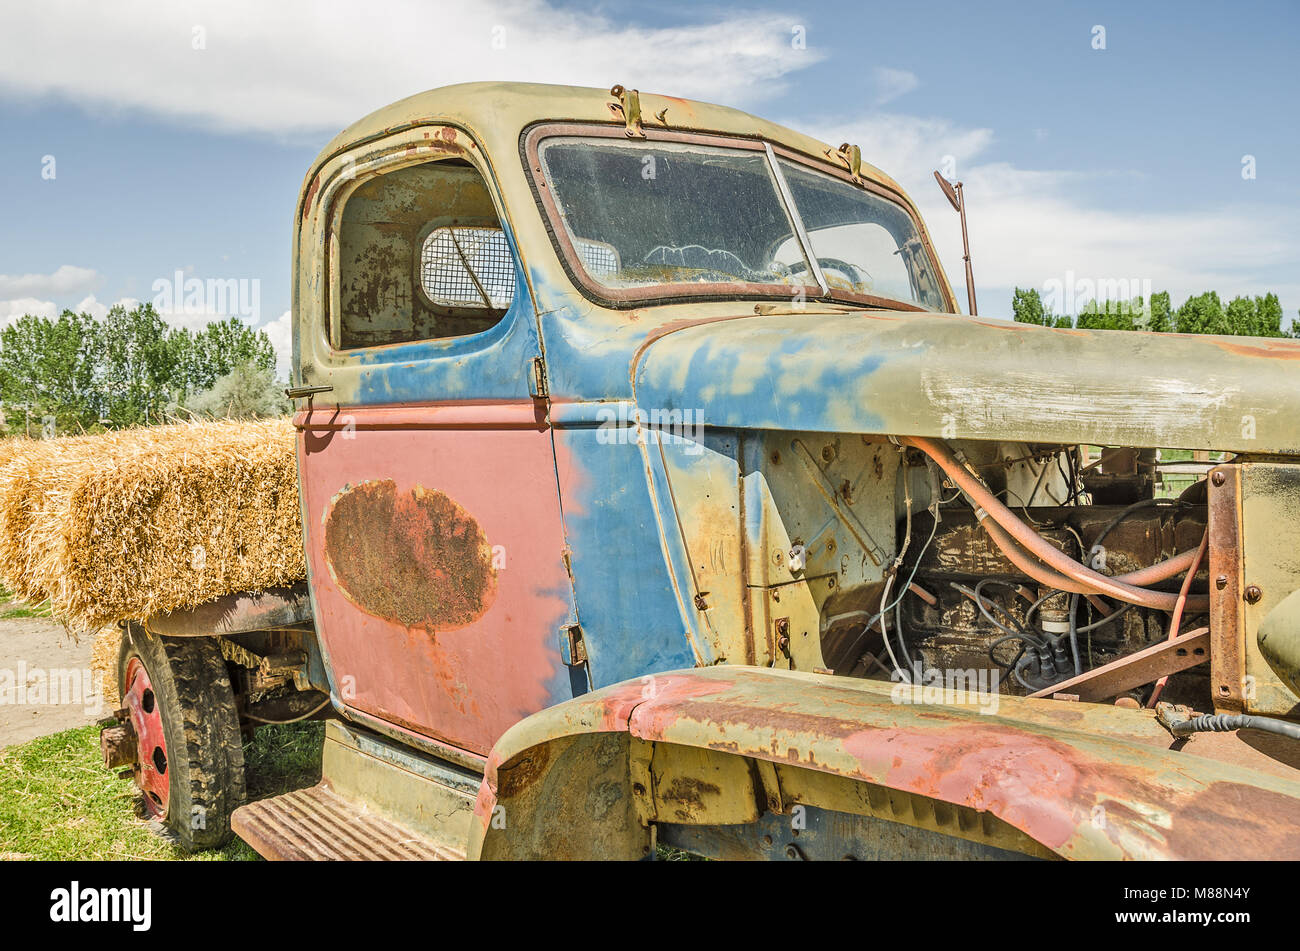 Old Truck Parts Stock Photos & Old Truck Parts Stock Images - Alamy